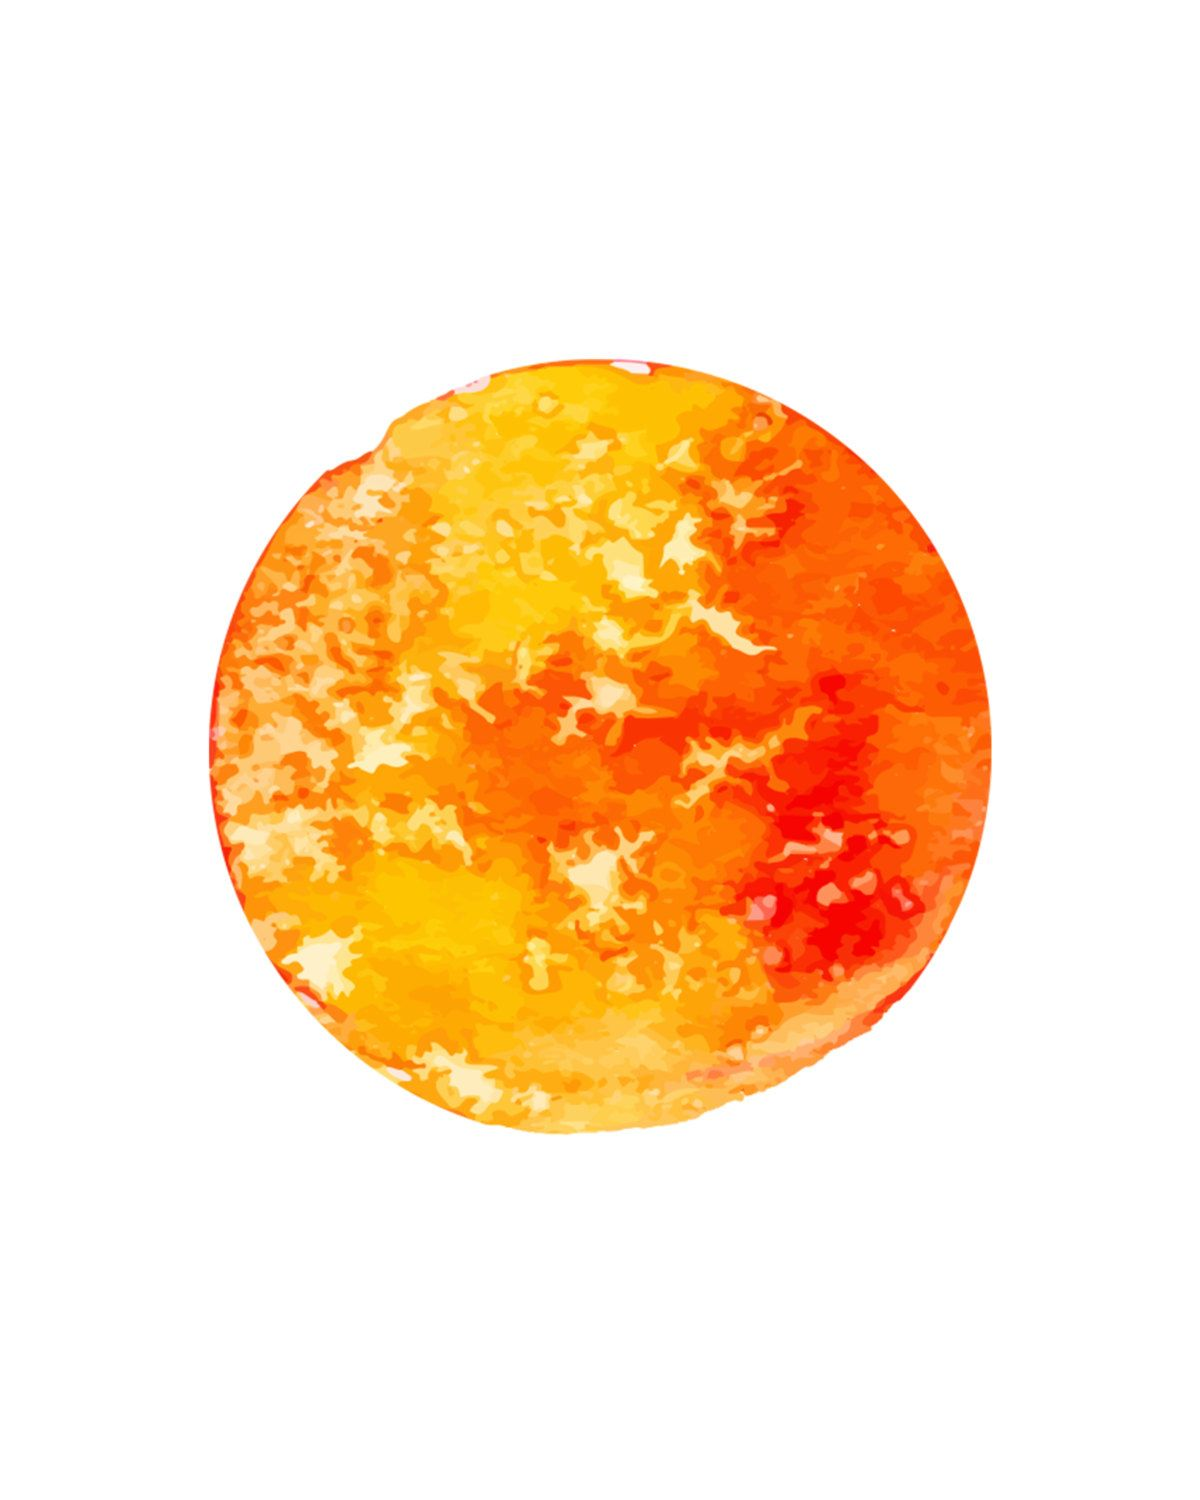 Sun Print Large Wall Art Watercolor Painting Large Painting